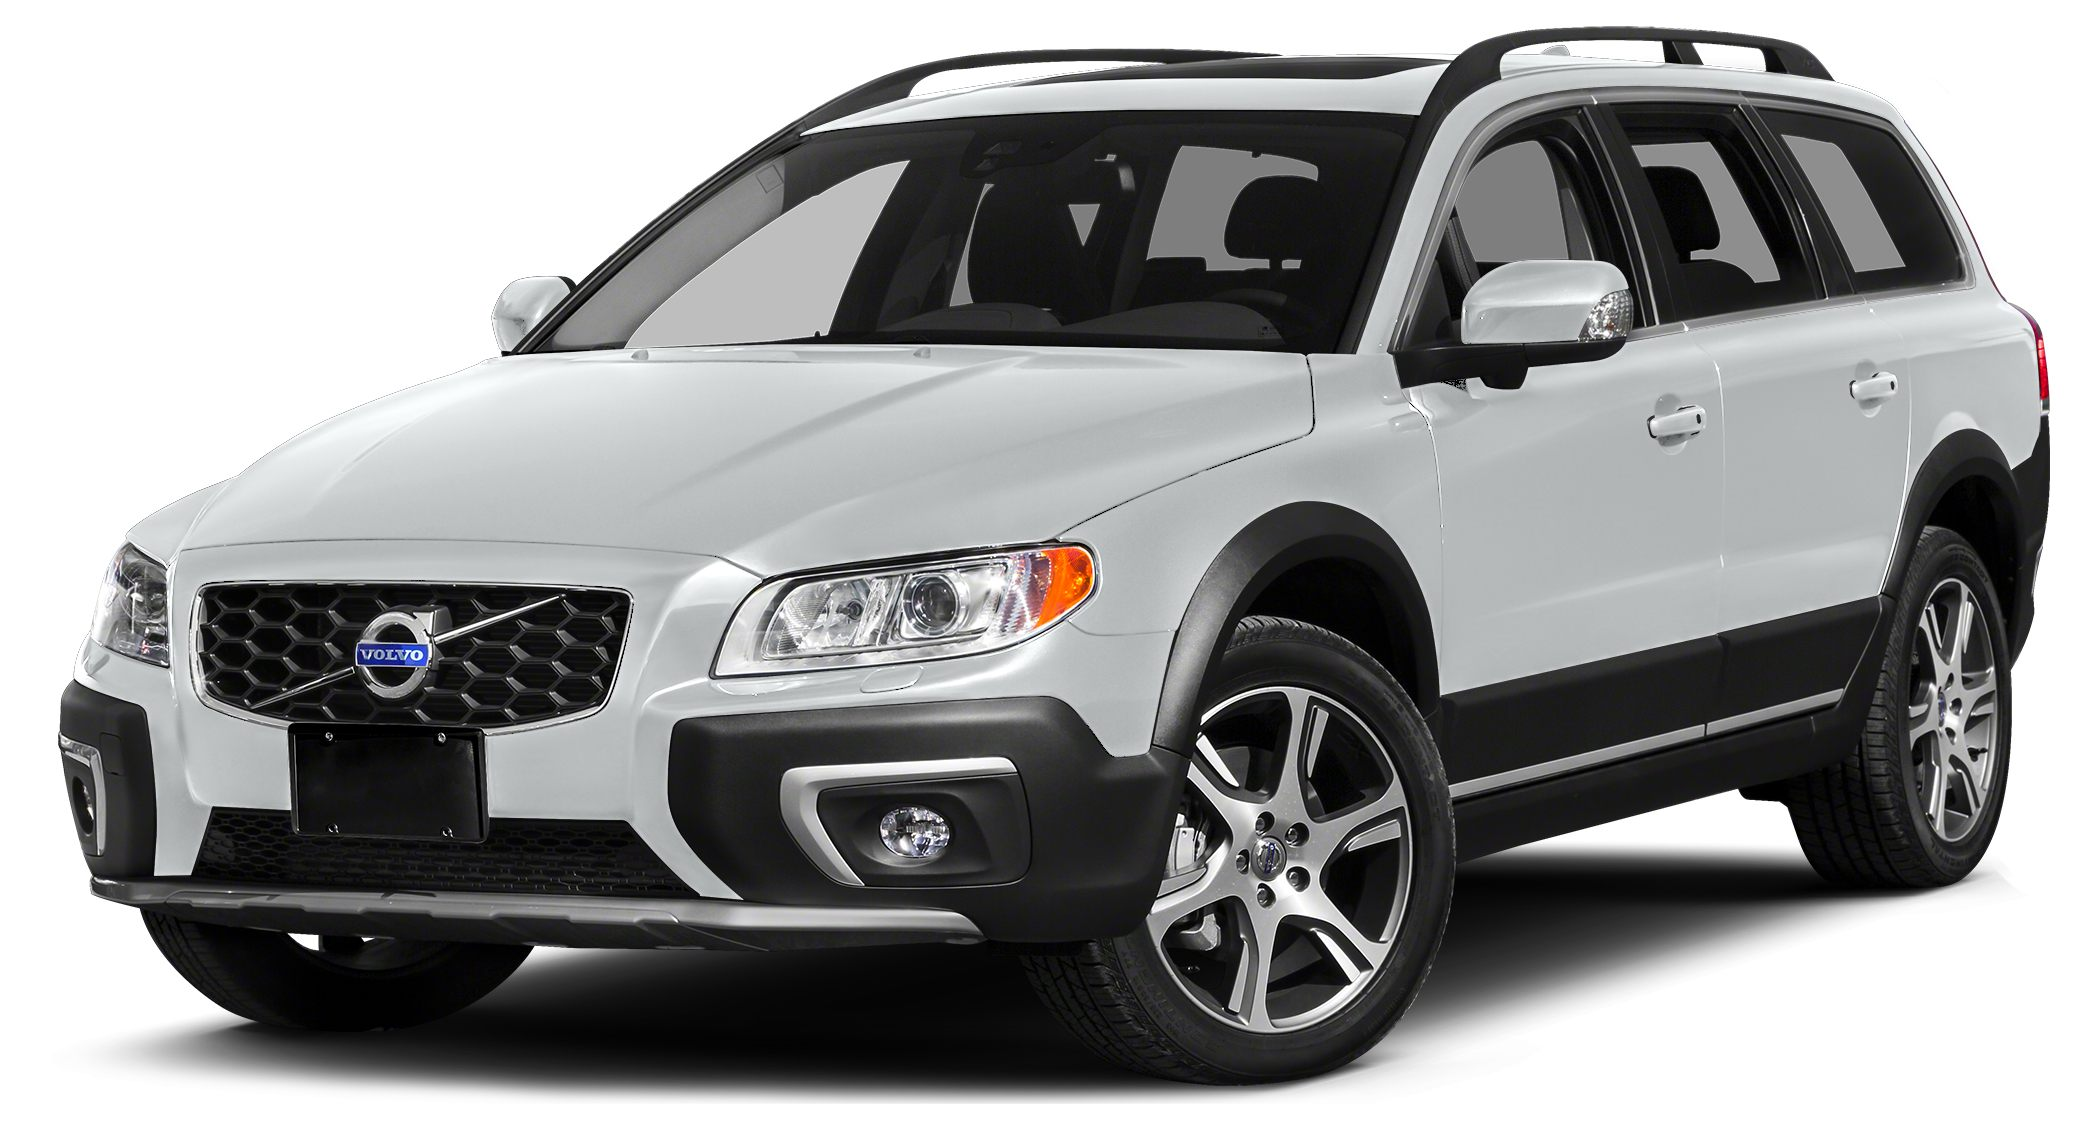 2015 Volvo XC70 T6  ONE OWNER  GREAT BUILD  Volvo Certified Warranty Through July 2022 or 10